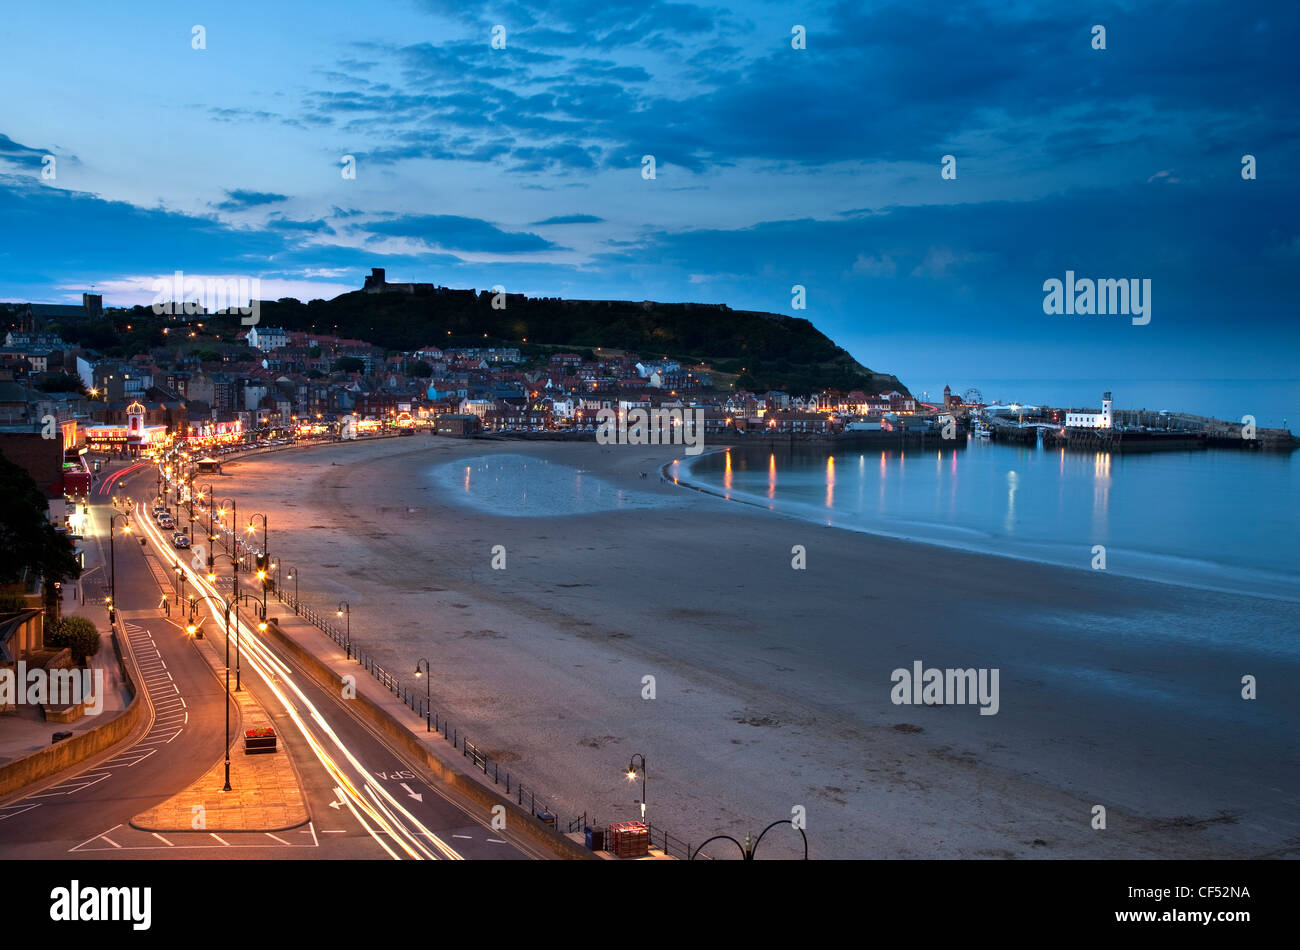 South Bay in Scarborough at dusk. - Stock Image